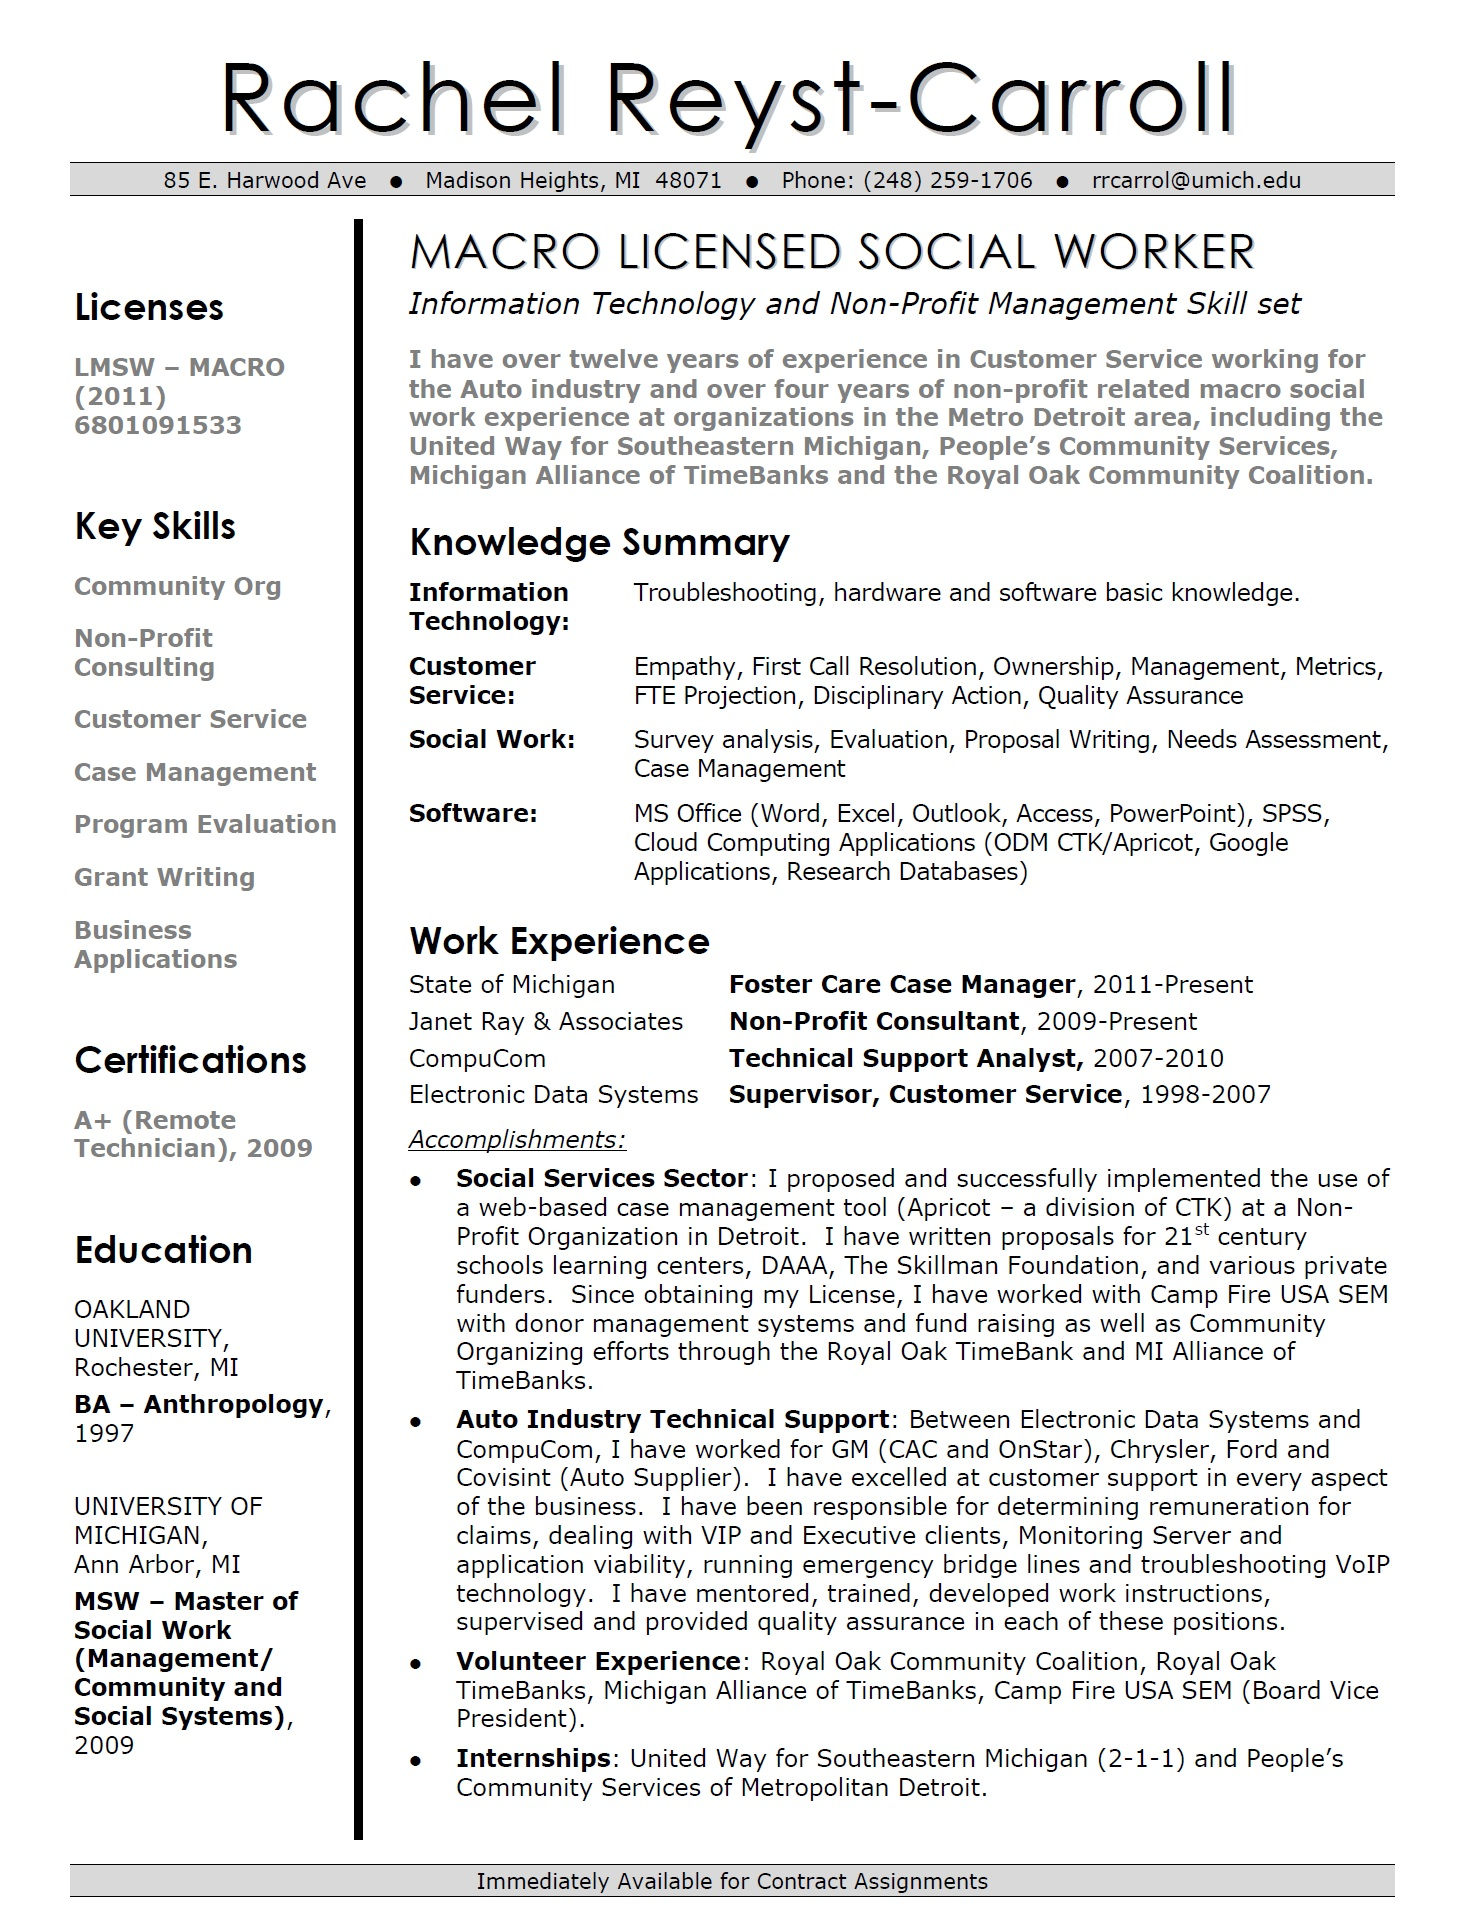 counselor resume ipasphoto mesmerizing for summer in amypark us inside help nyc embedded Resume Day Camp Counselor Resume